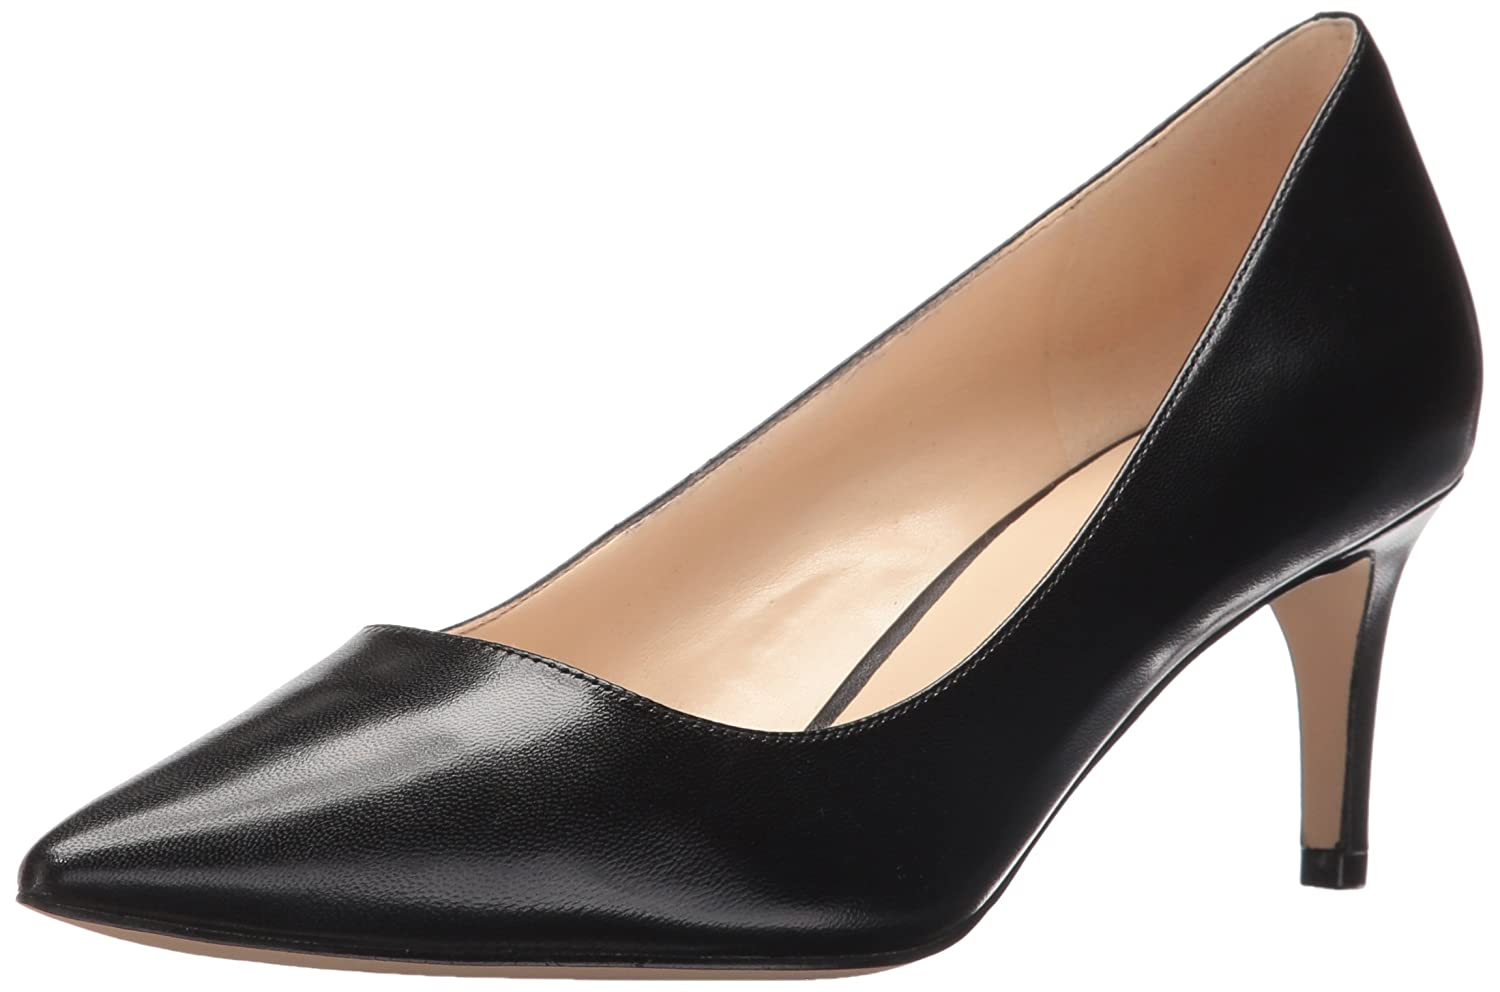 Nine West Women's Smith Leather Dress Pump B01LZRW6AD 7.5 B(M) US|Black